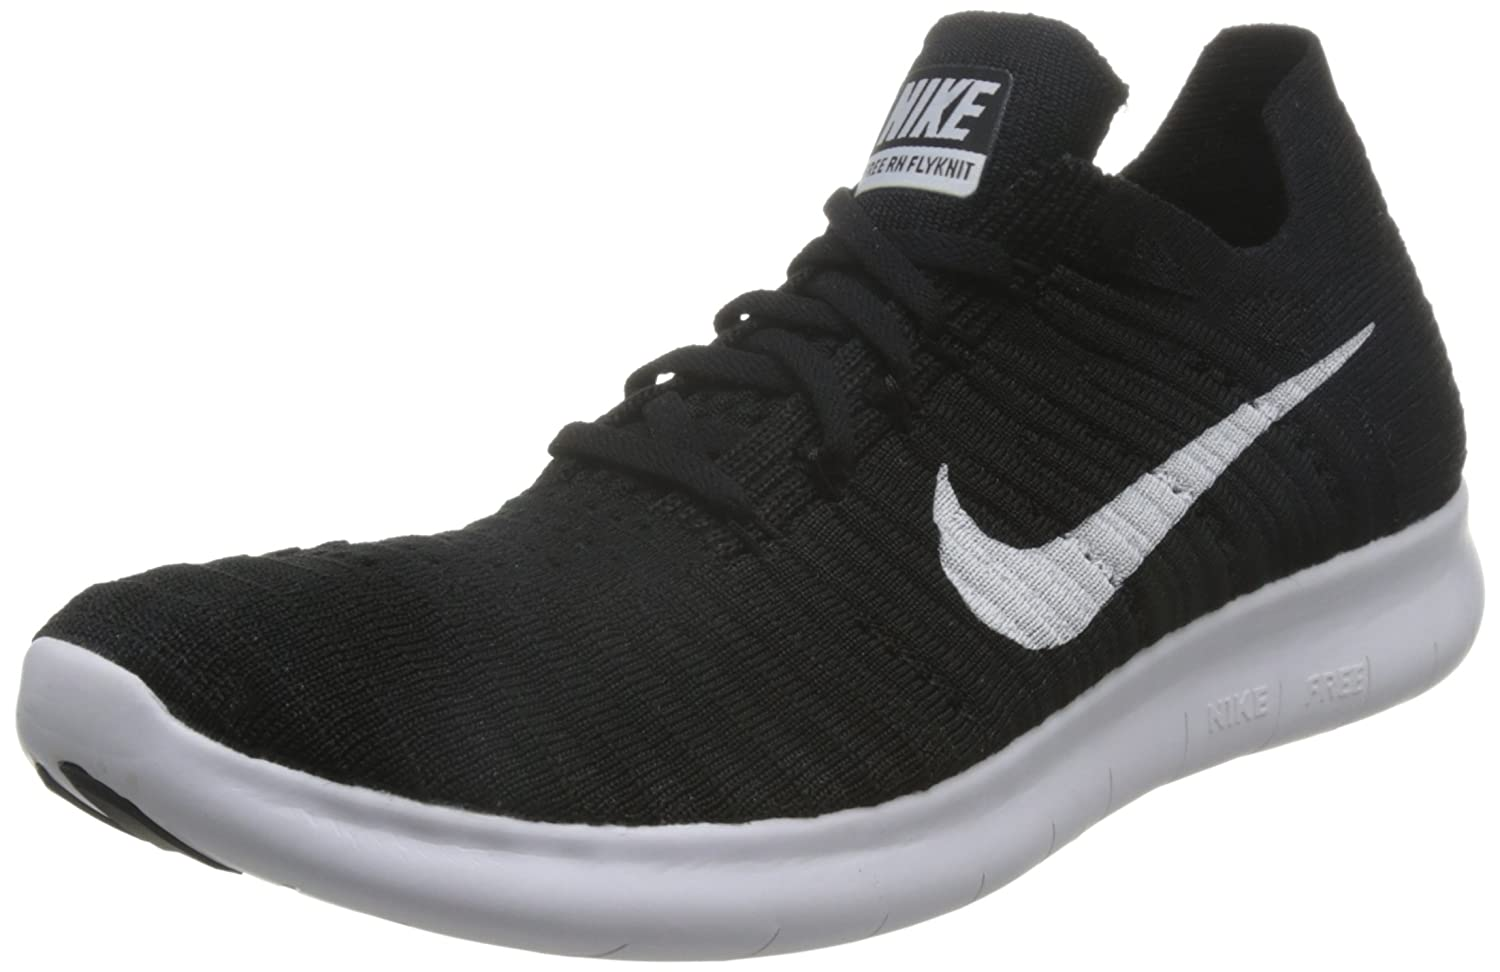 release date 252f9 b86a9 Nike Mens Free Rn Flyknit Running Shoes Amazon.co.uk Shoes